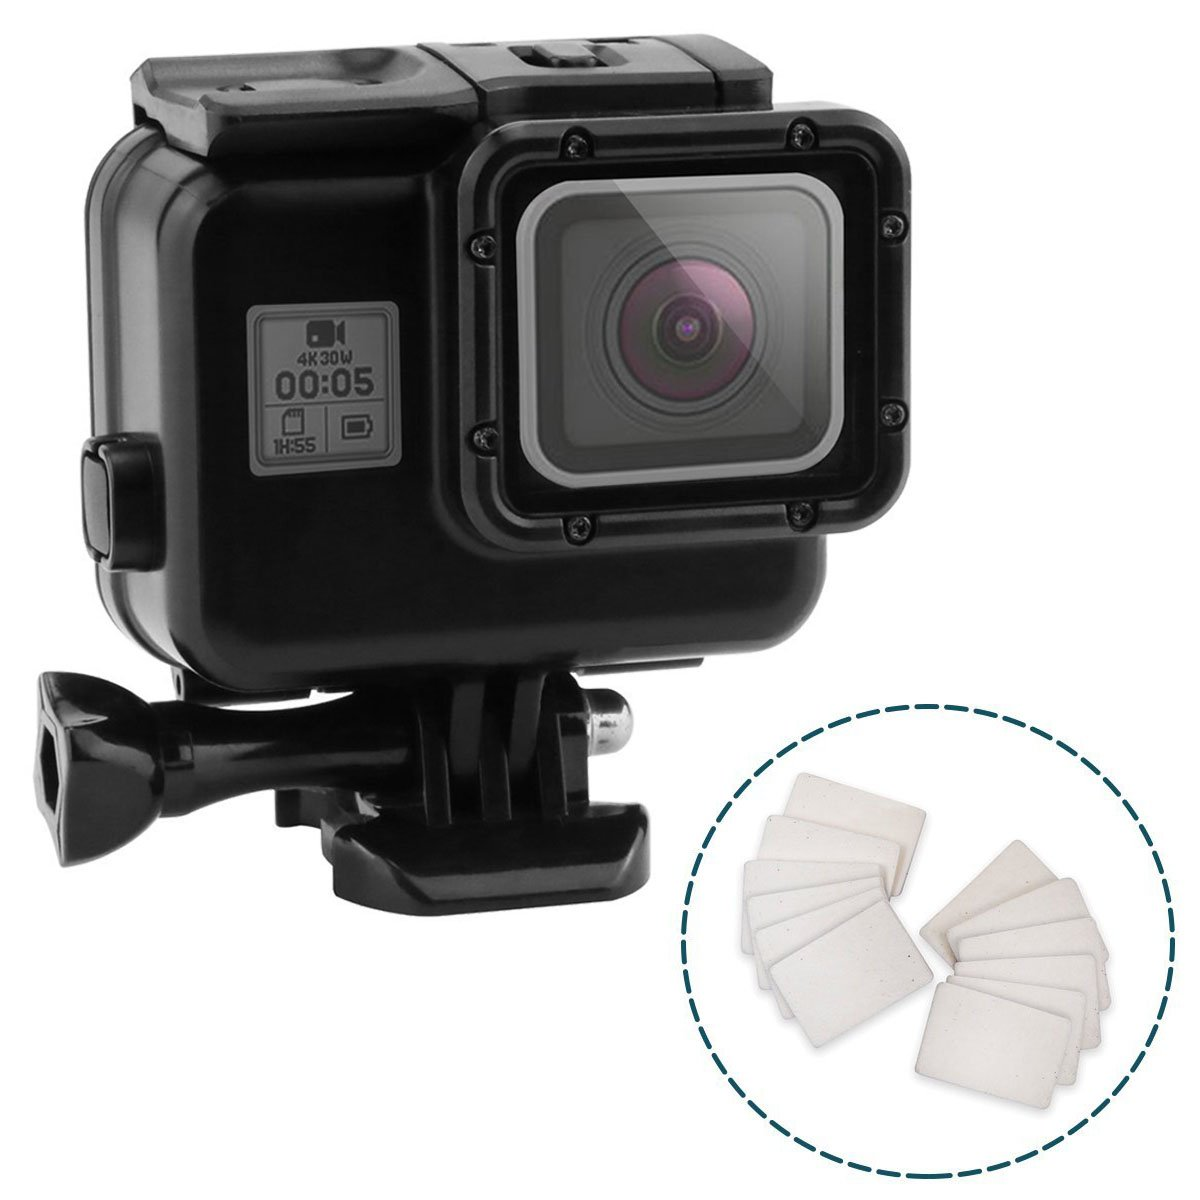 Impact Imagery – ブラックアウトUnderwater Housing for GoPro Hero 5 & 6 with Anti Fog Inserts – マット保護用防水Diveシェル – Deep Water Scubaケース – アクセサリキットwith Touch and Solidバックドア   B076G4W5X9